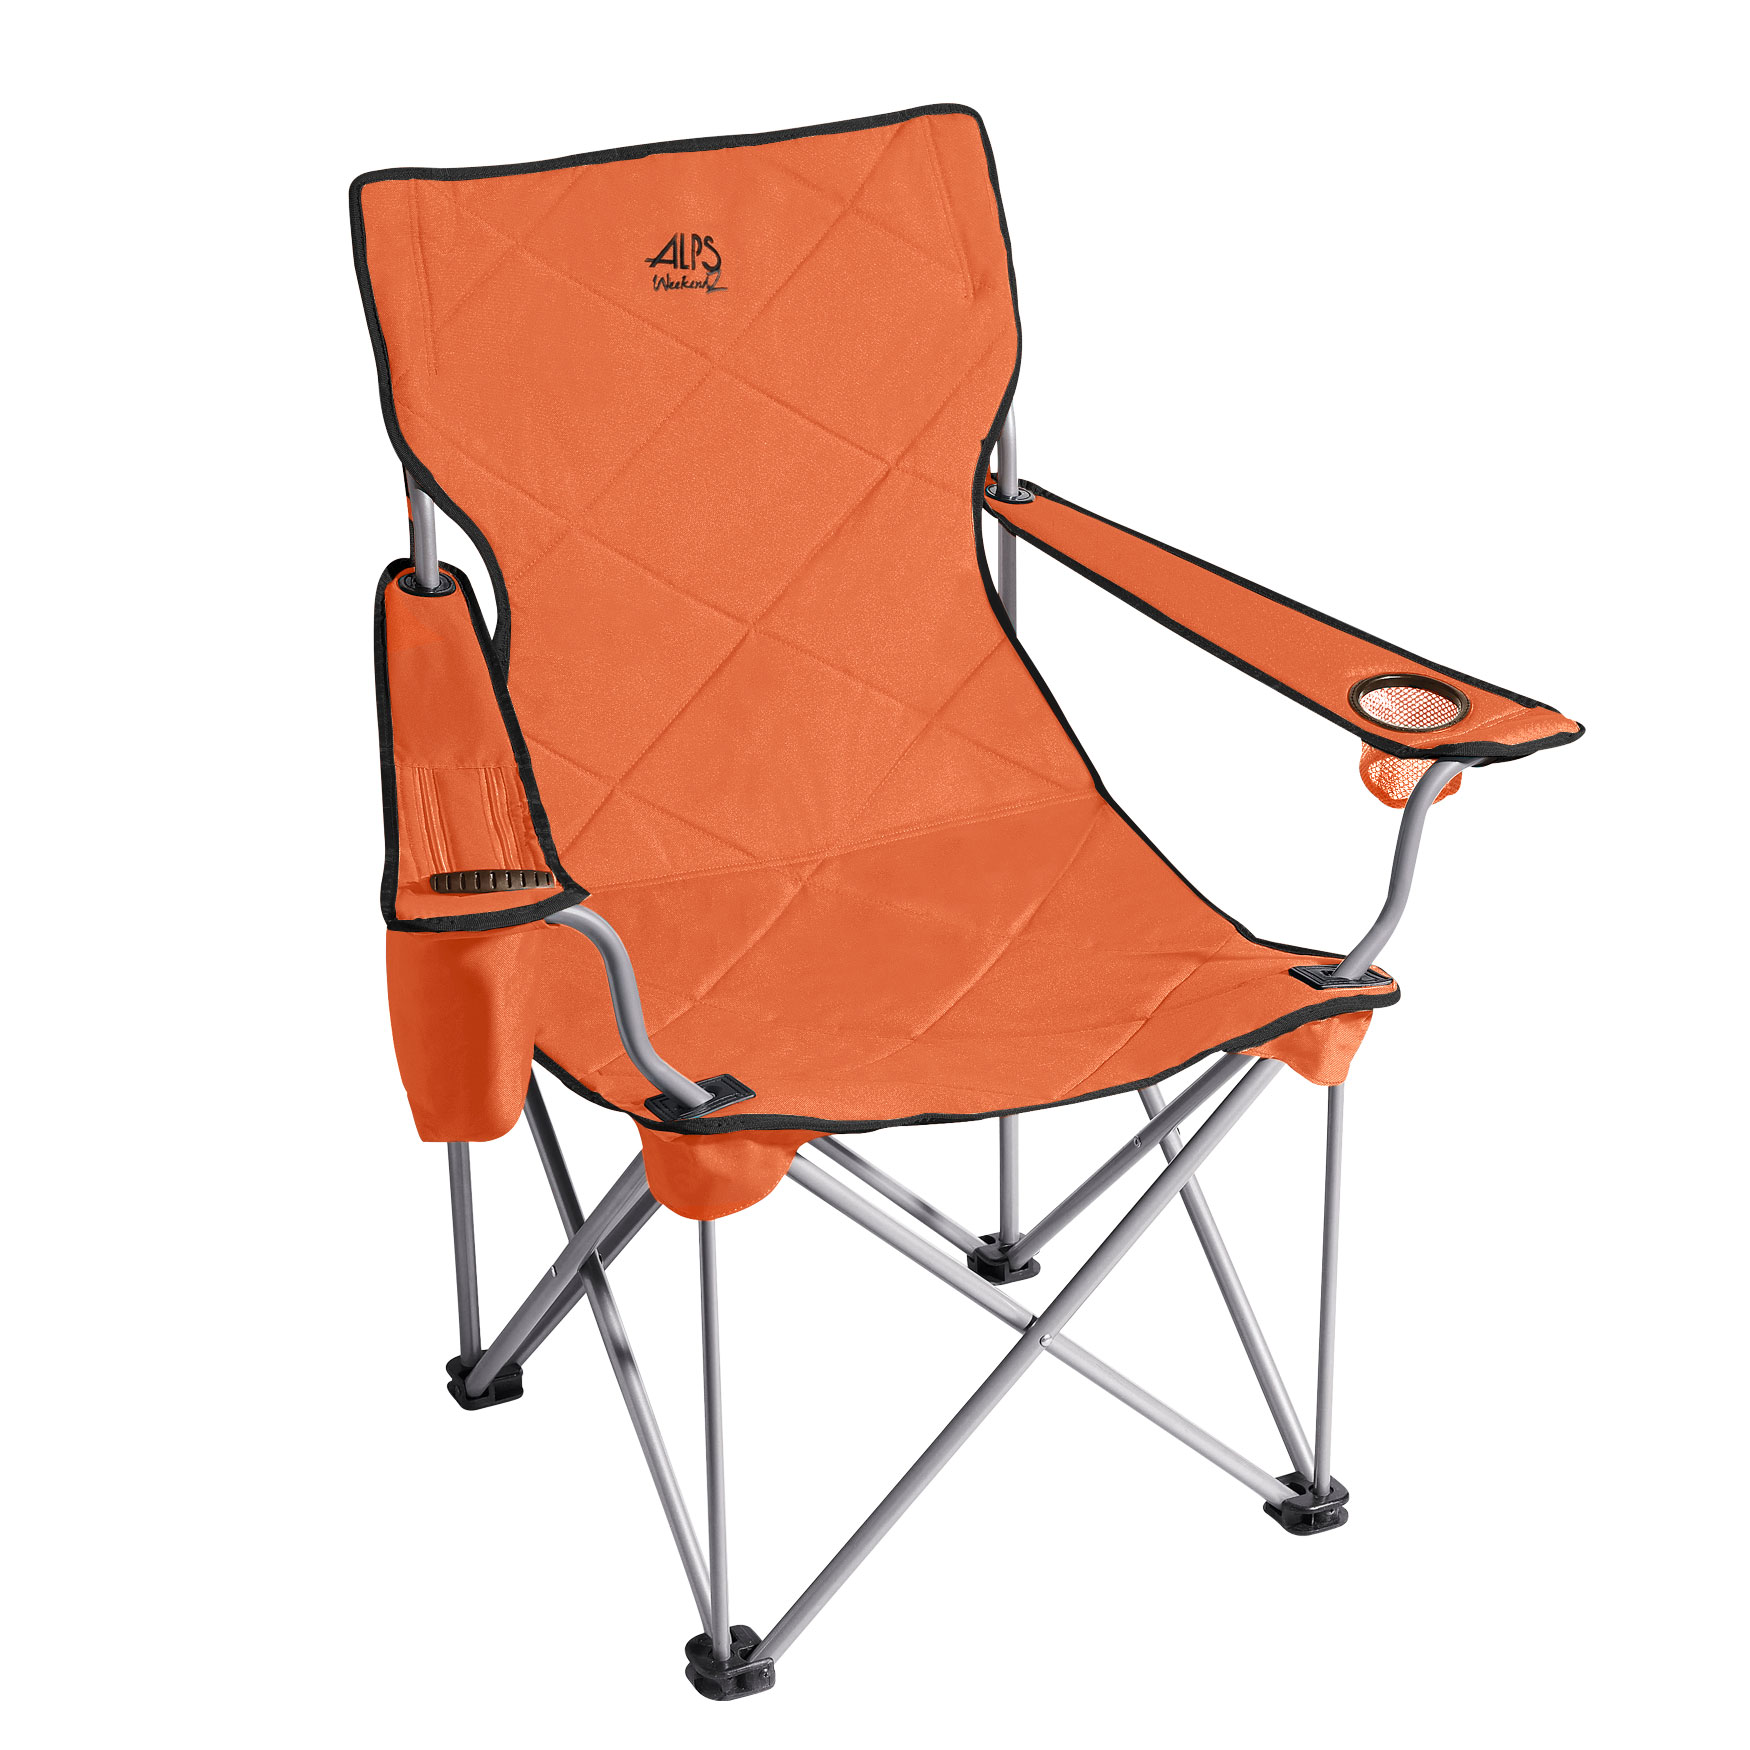 Extra Wide King Kong Folding Camp Chair,